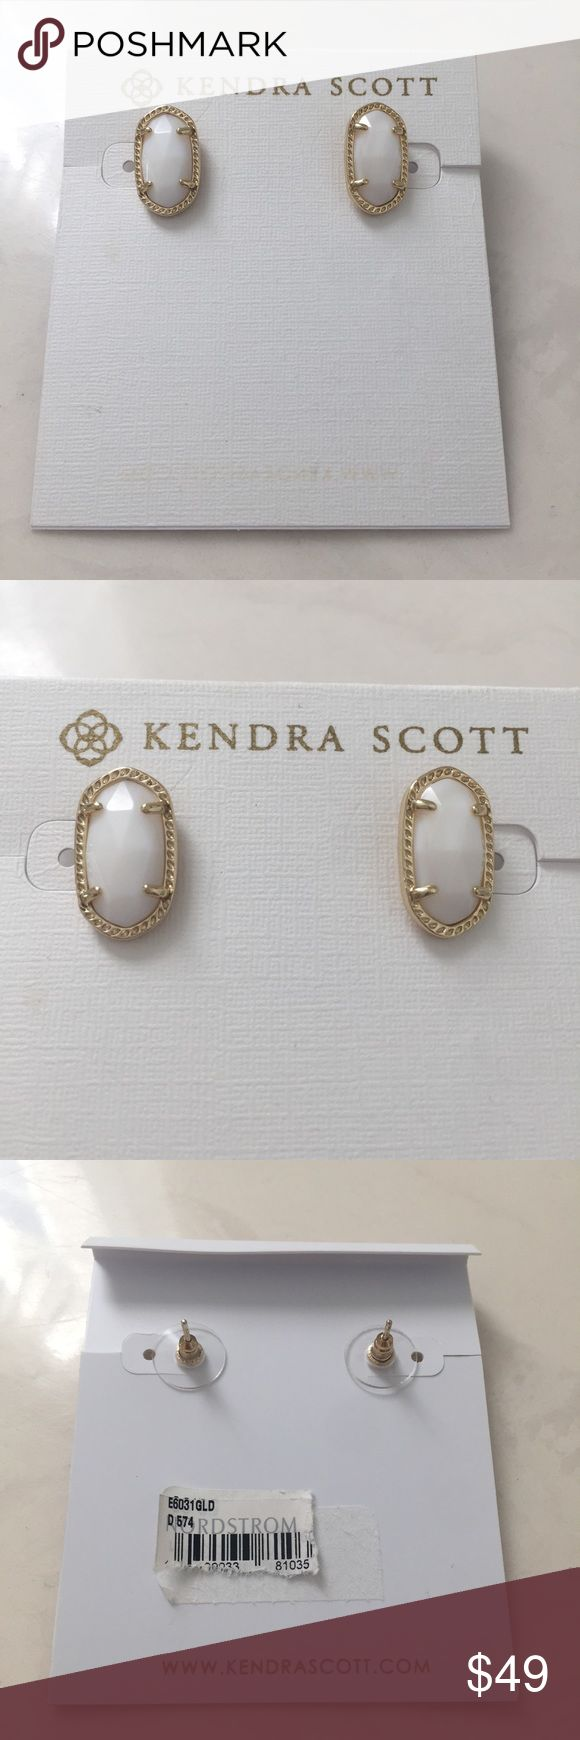 NWT Kendra Scott Ellie Gold & White Pearl Earrings Re-posh and HTF. I love these, but think the Lee earrings would look better on me with the Elisa necklace. No dustbag. Not been tried on, I just put them up to my ear to see how they would look! I did notice the backs are a little bent but it doesn't affect anything  Look closely at the photos to know what exactly you are receiving and the condition that it's in! Smoke/Pet free home. Bundle 2+ of my items to save 15%. I do not trade or hold…